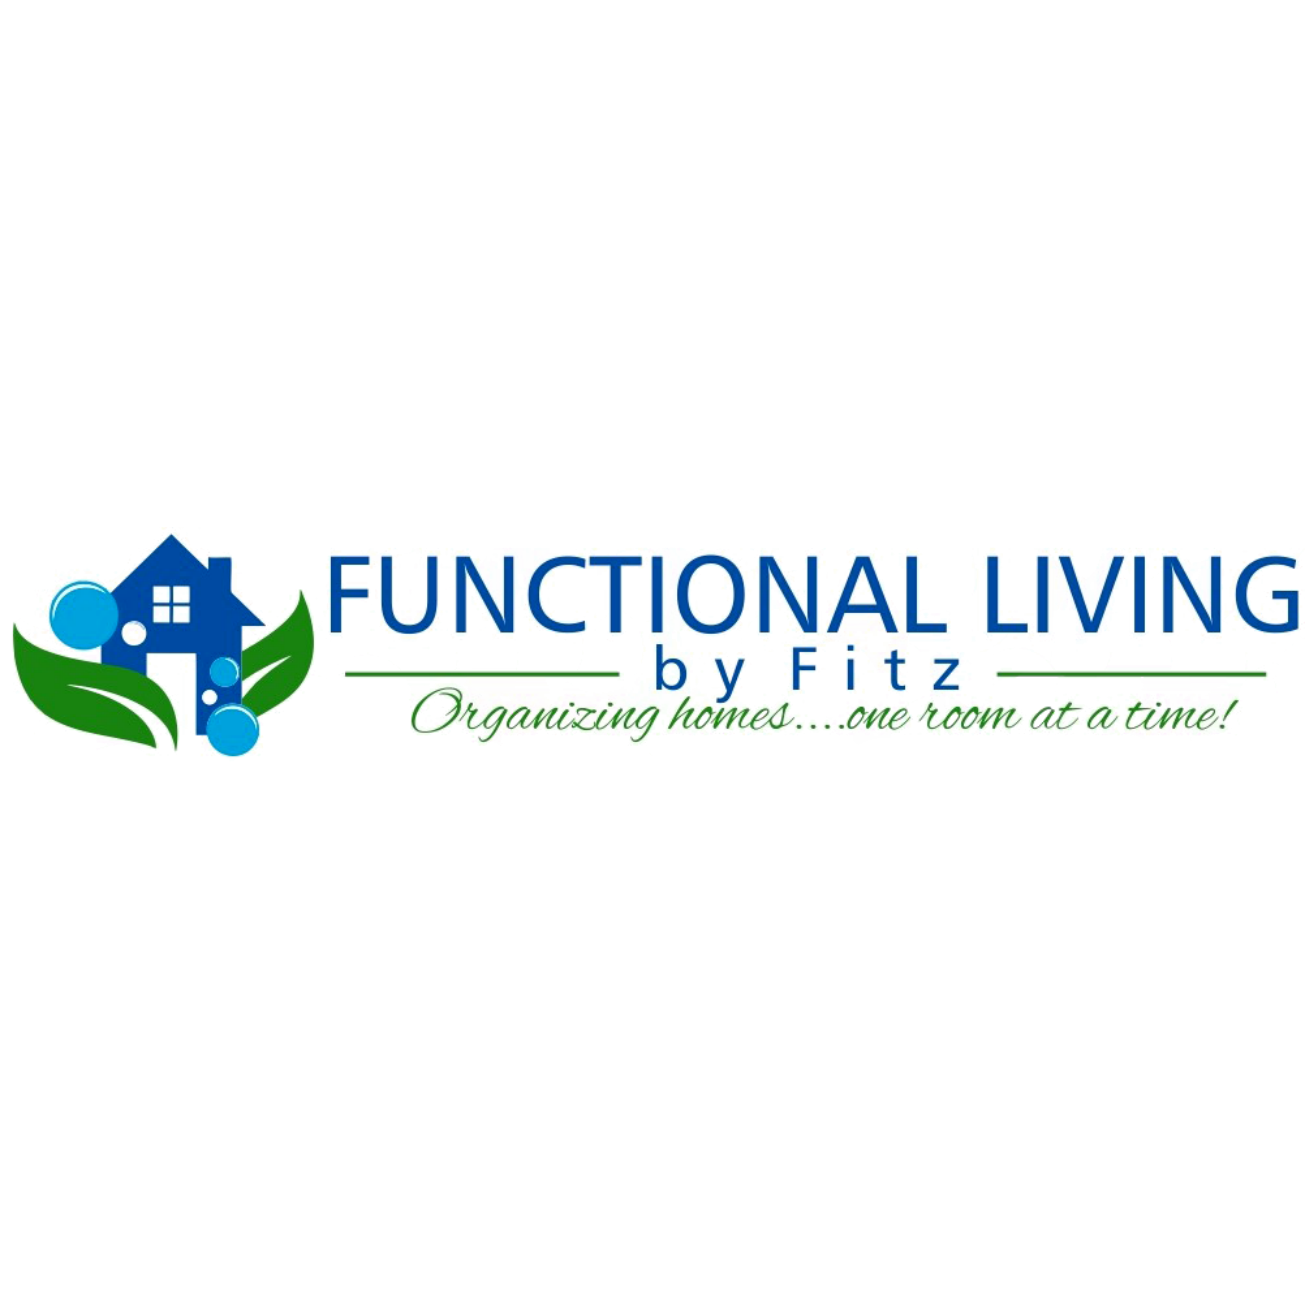 Functional Living by Fitz, LLC